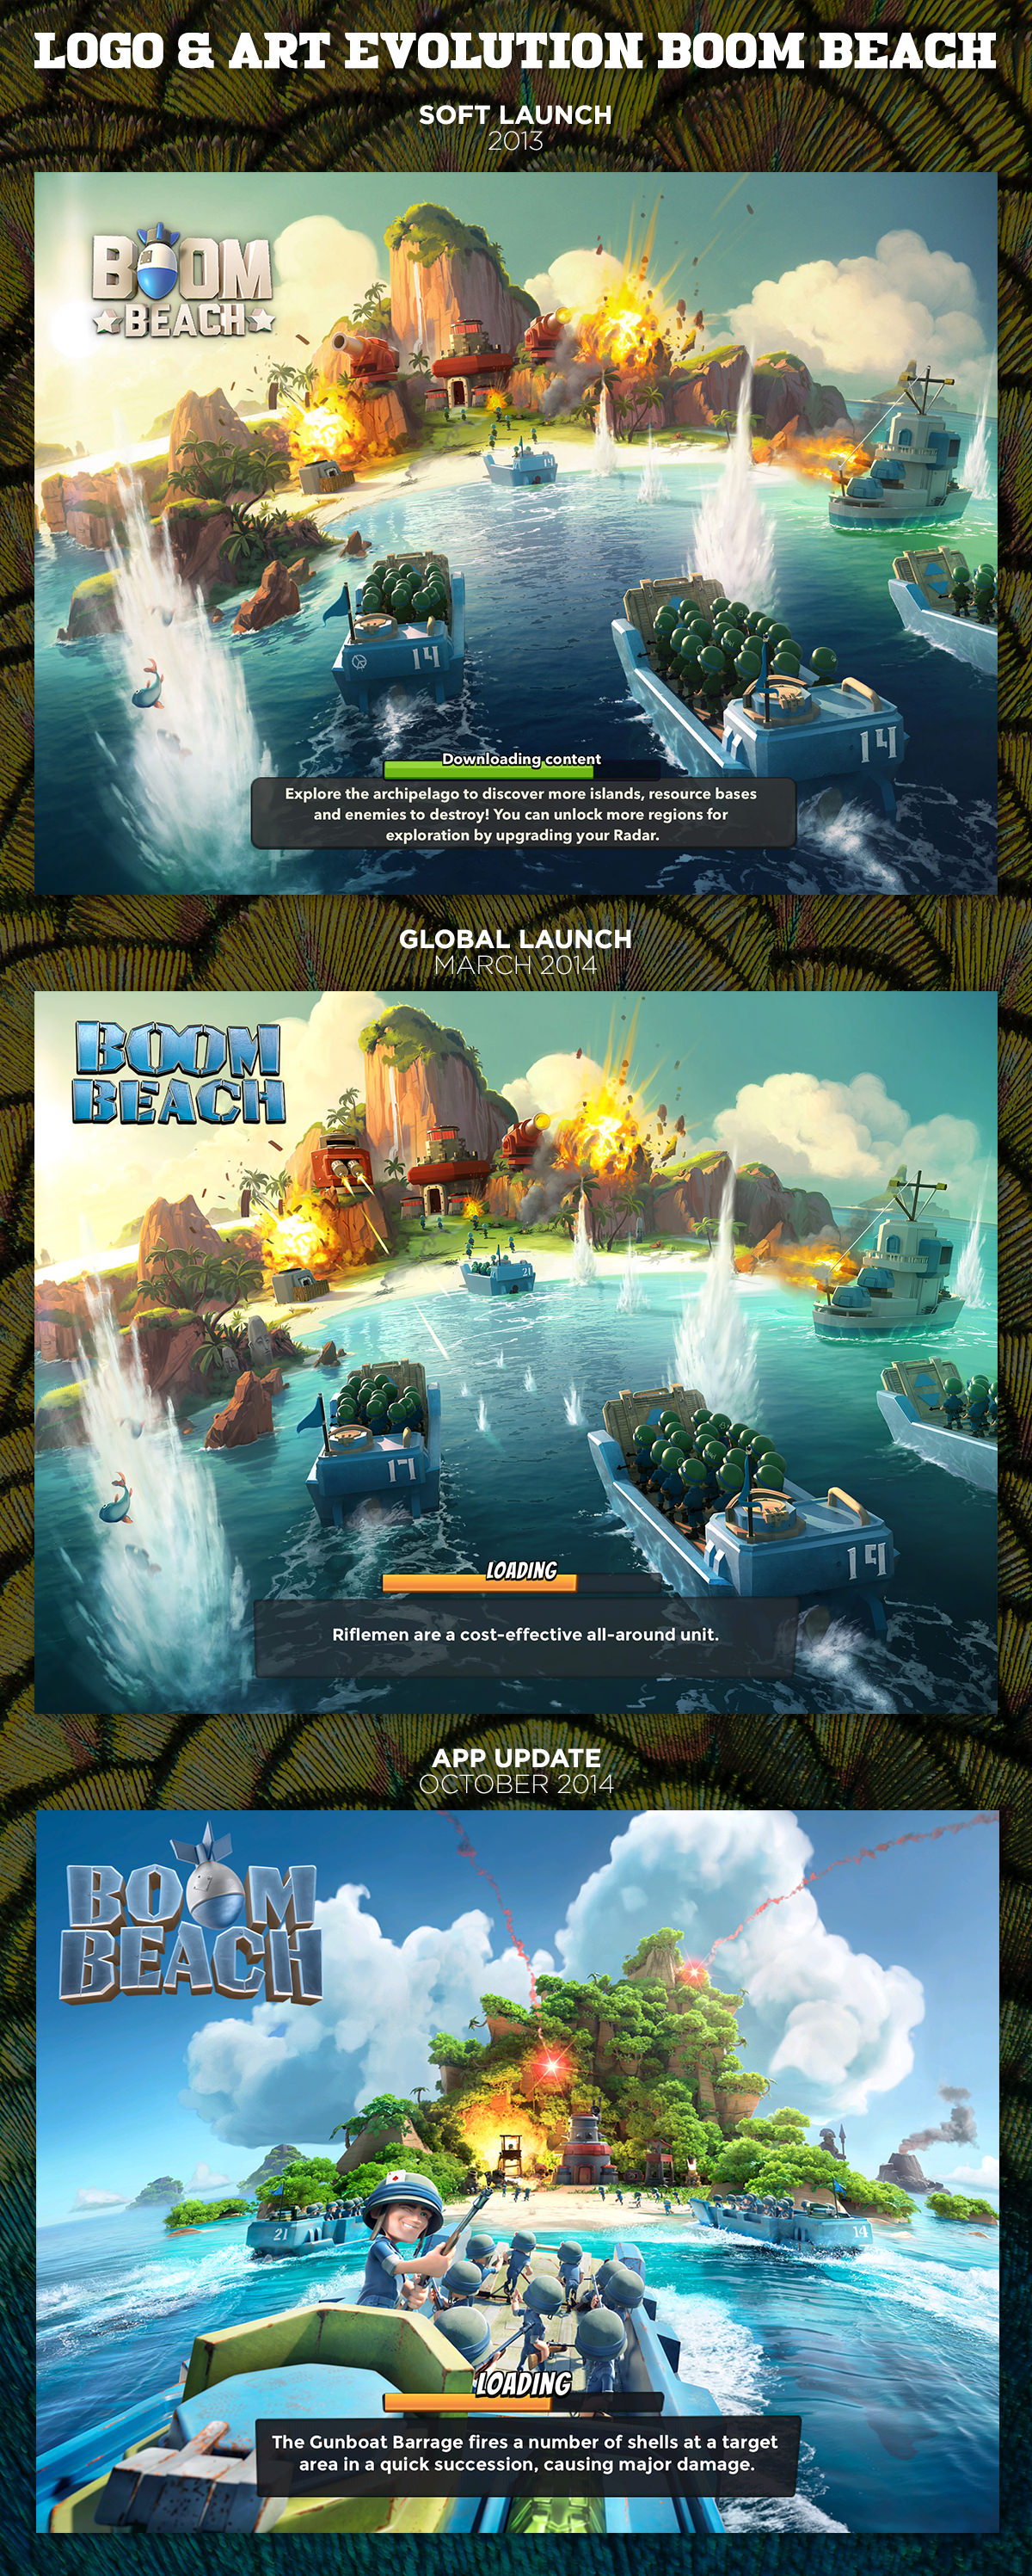 Boom Beach Key Art and Logo Evolution